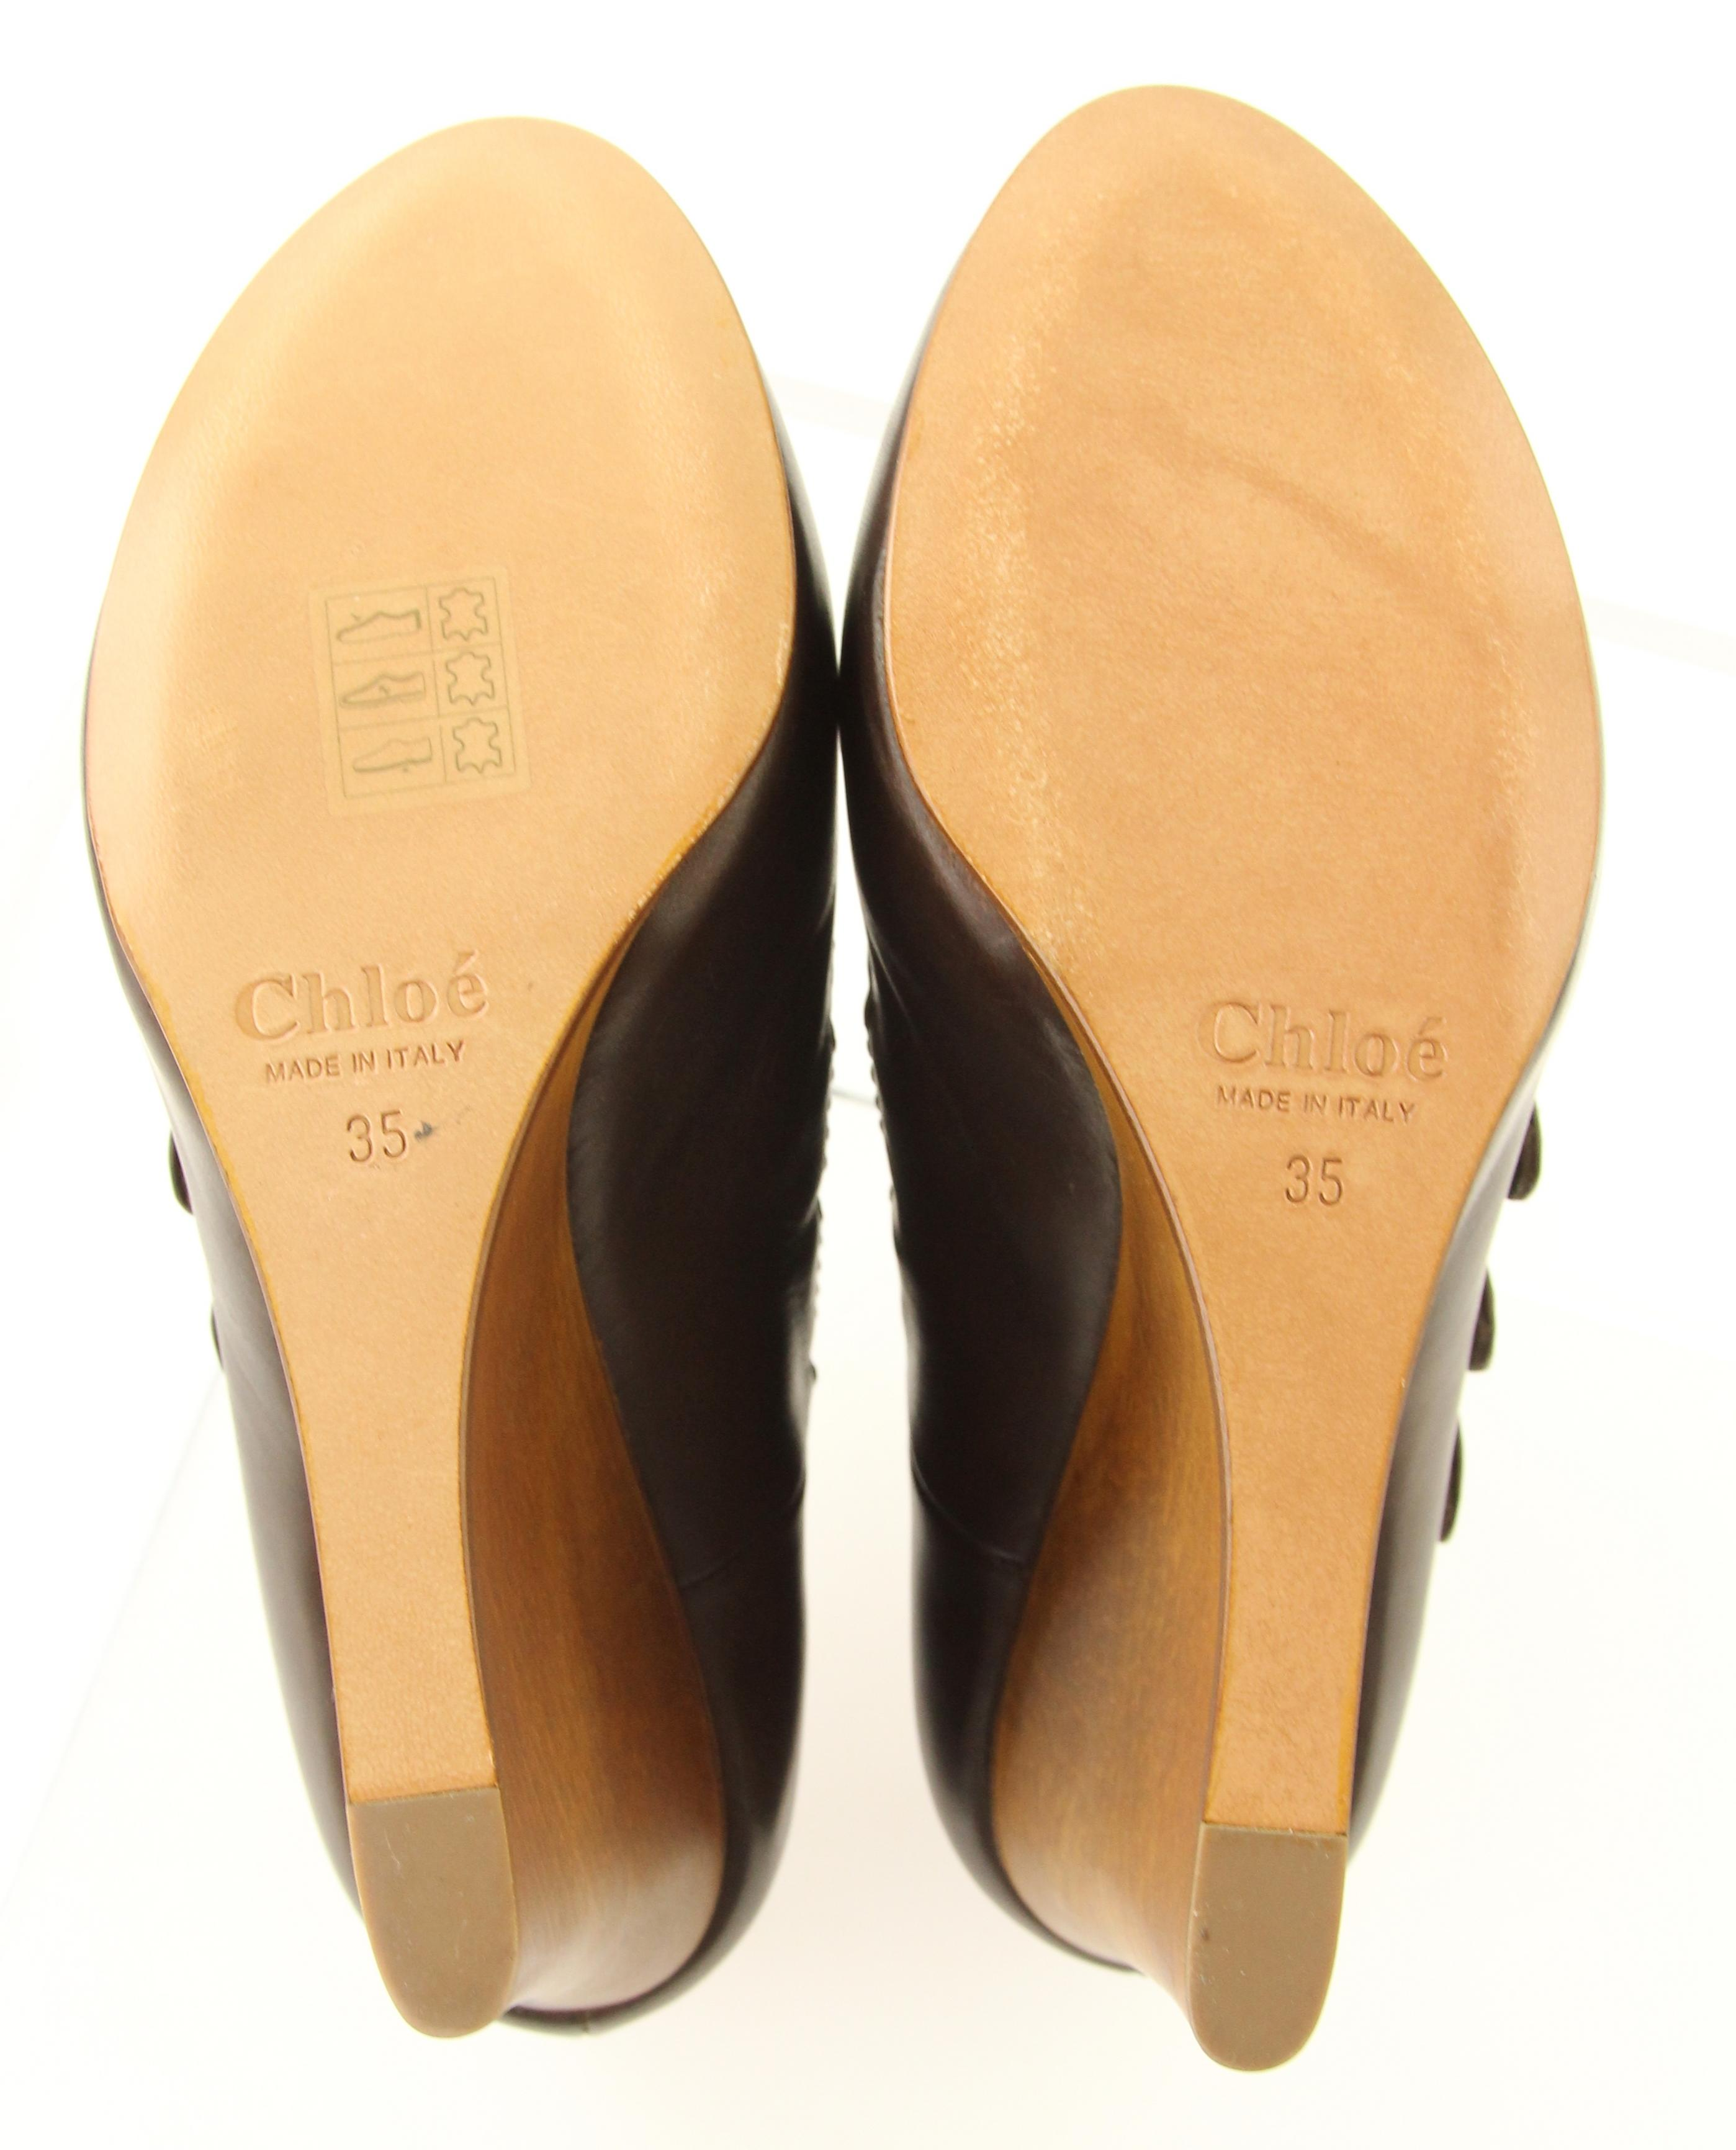 a125c2c679 US Chloé Brown Dark Leather Buckle Detail Detail Detail Wedges Size EU 35  (Approx.